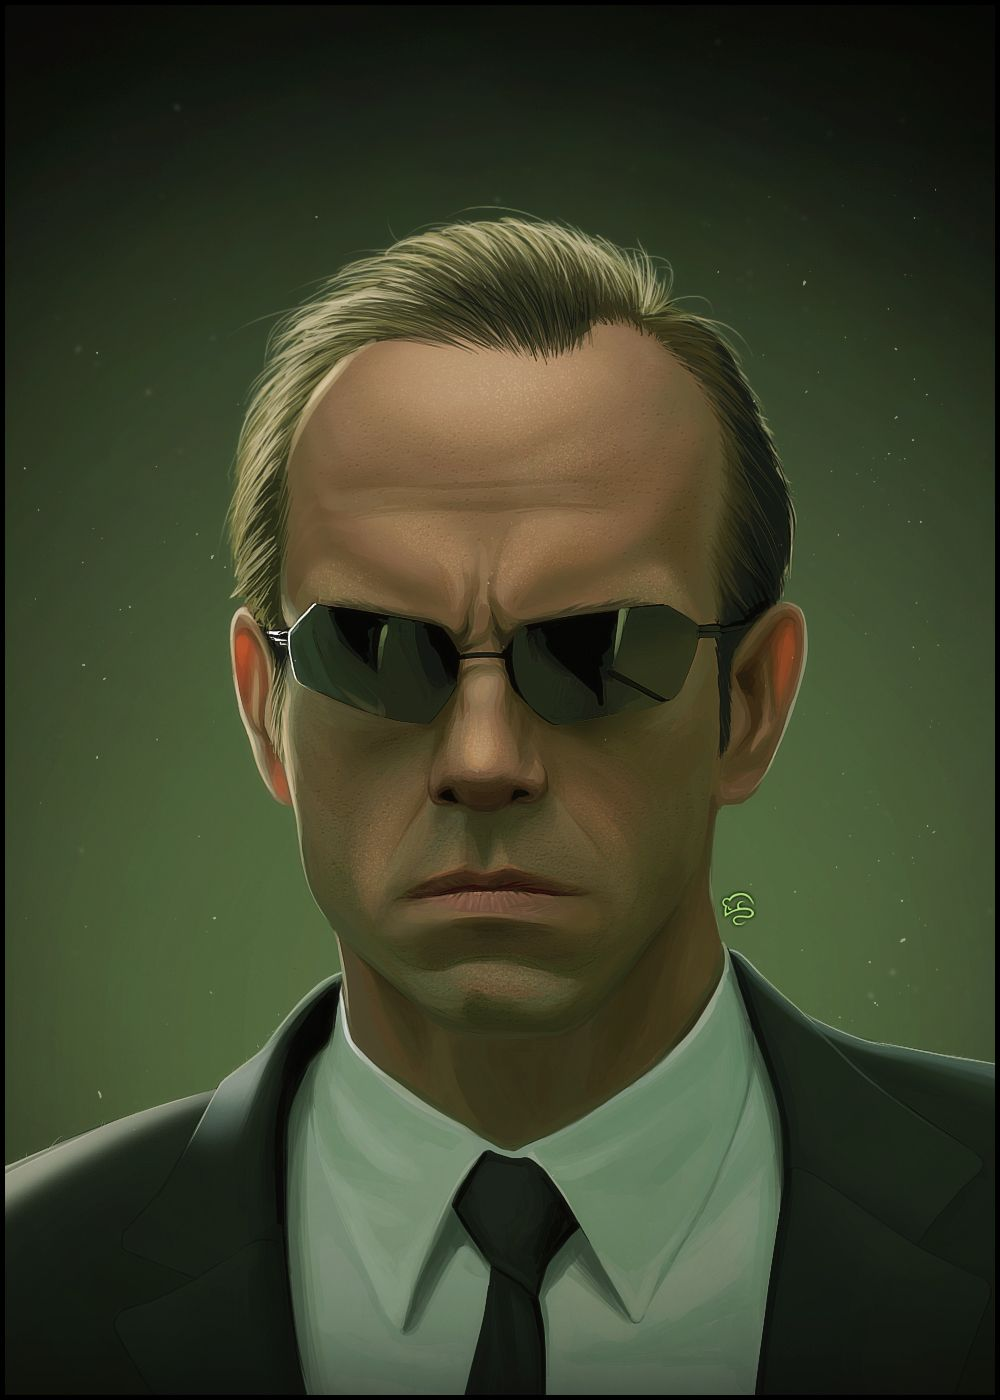 The Matrix - Agent Smith by TovMauzer | Matrix | Pinterest ...